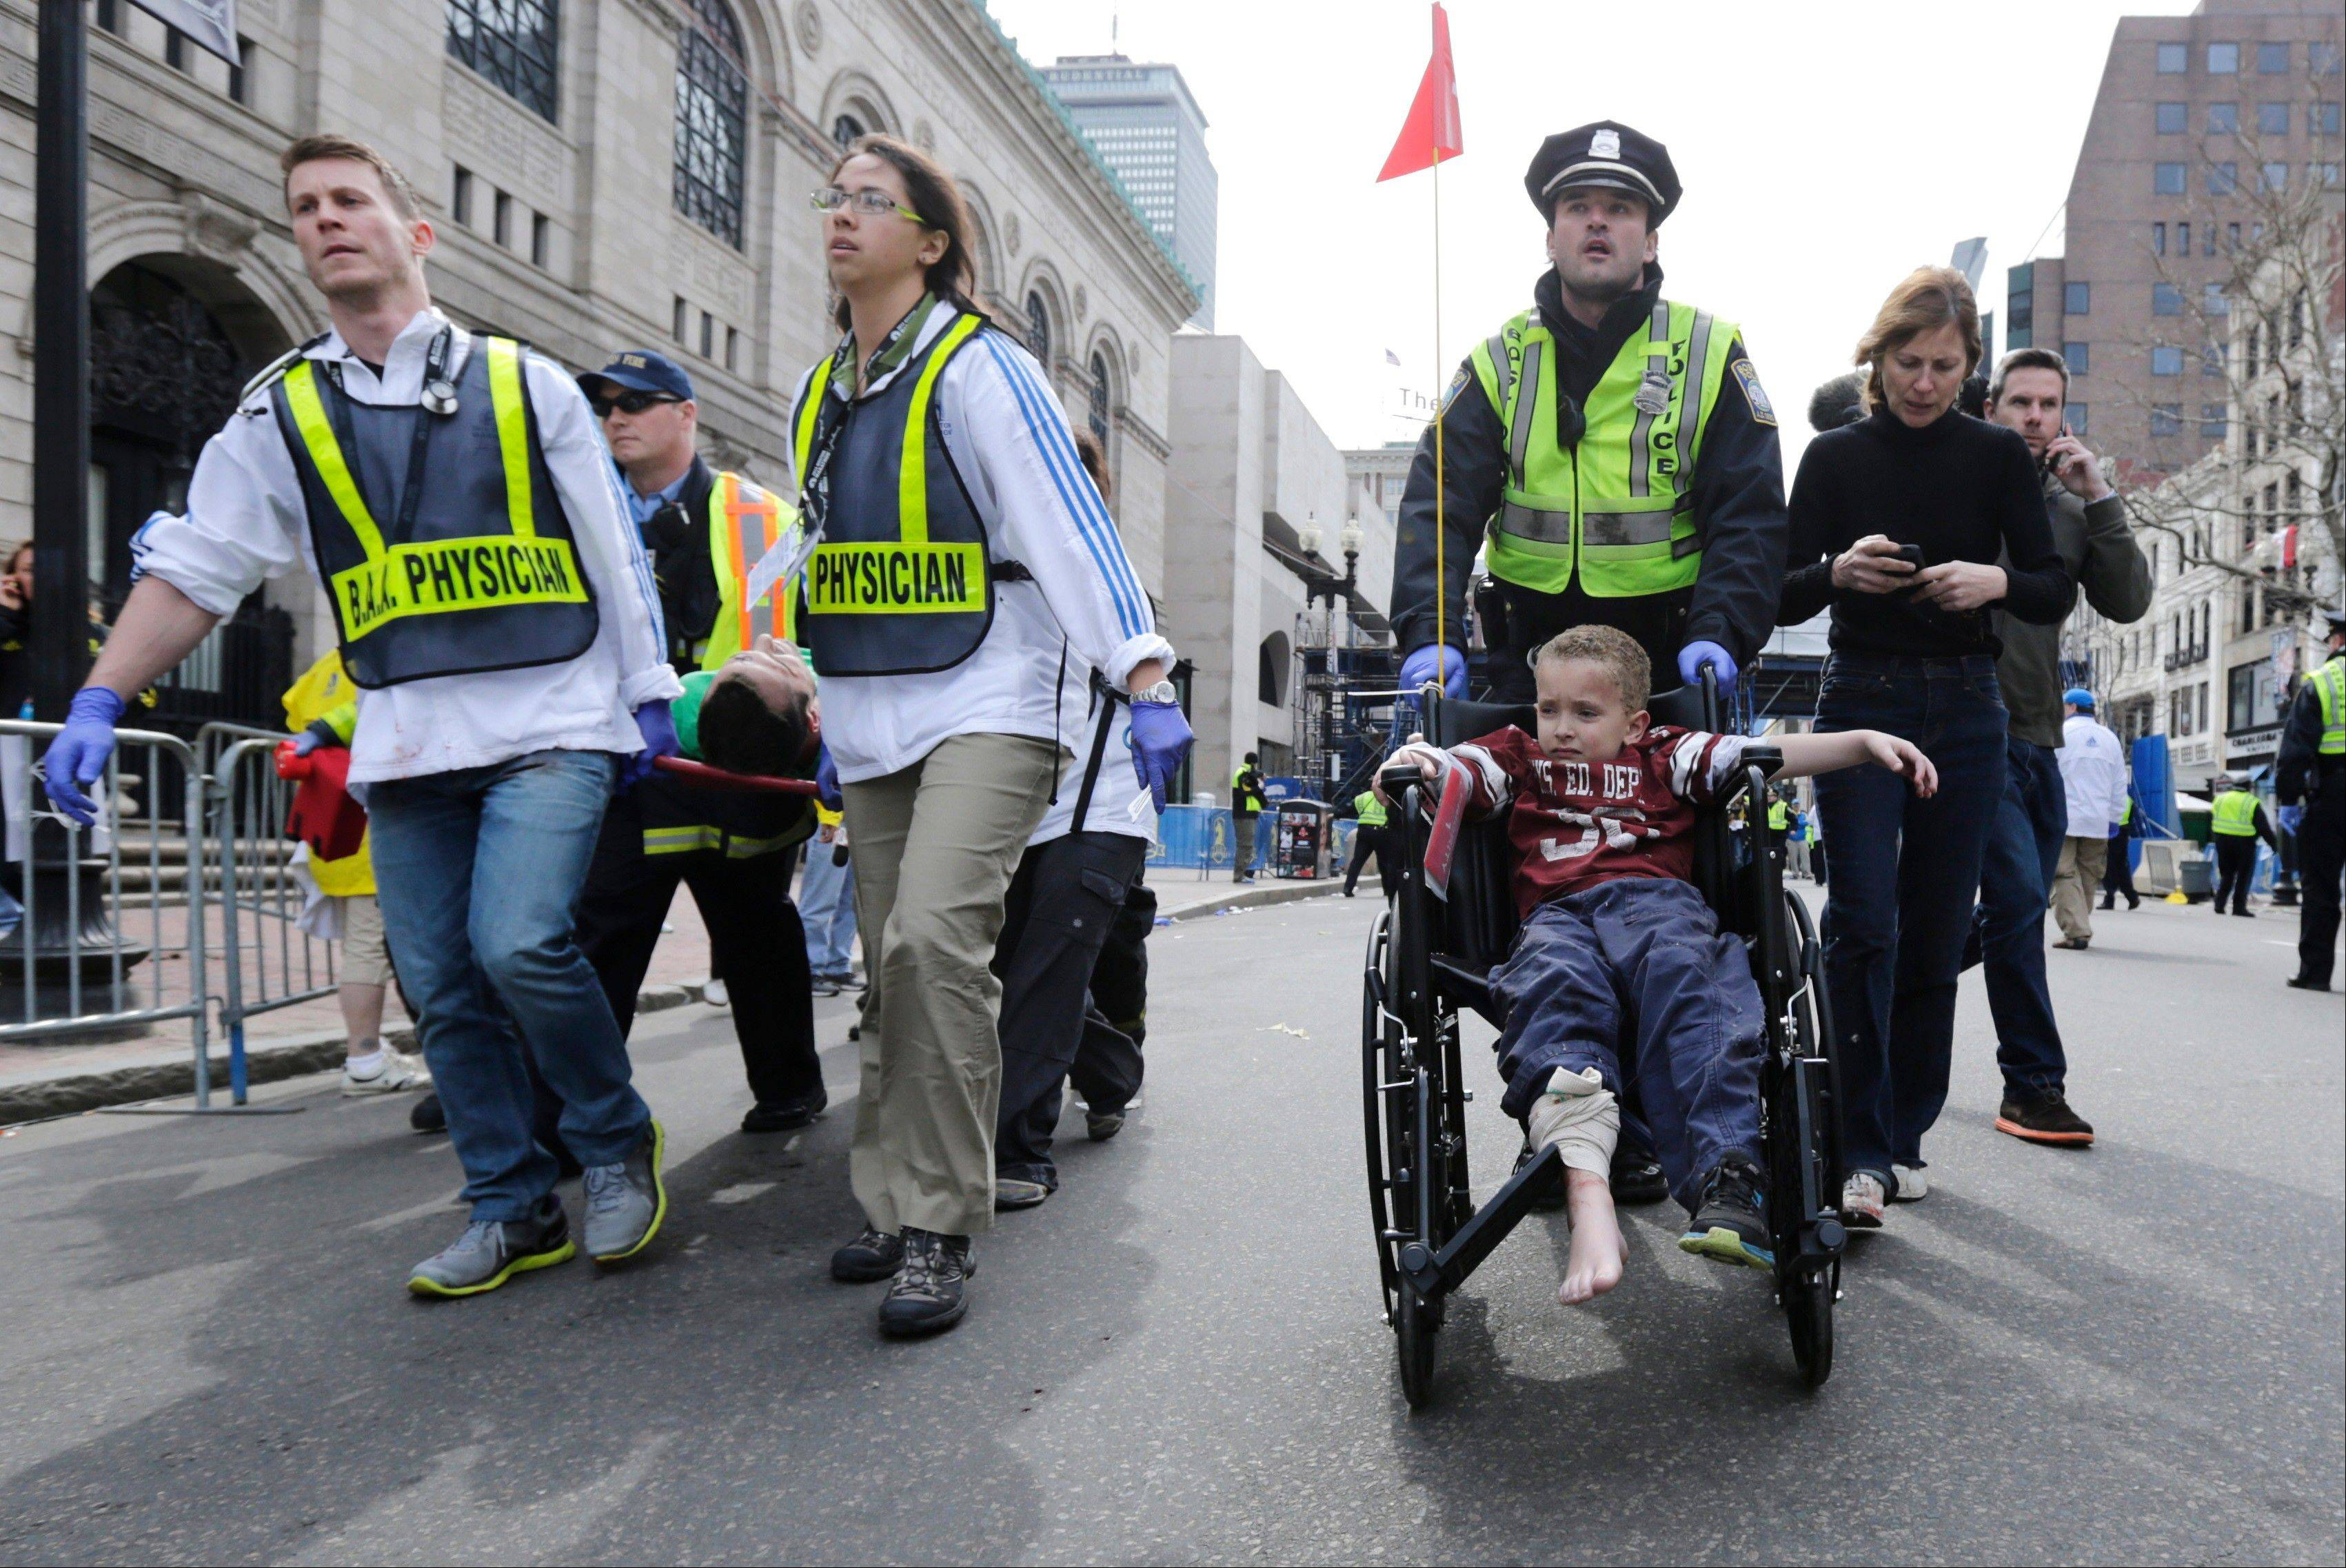 A Boston police officer wheels in injured boy down Boylston Street as medical workers carry an injured runner following an explosion during the 2013 Boston Marathon in Boston, Monday, April 15, 2013. Two explosions shattered the euphoria at the marathon's finish line on Monday, sending authorities out on the course to carry off the injured while the stragglers were rerouted away from the smoking site of the blasts.